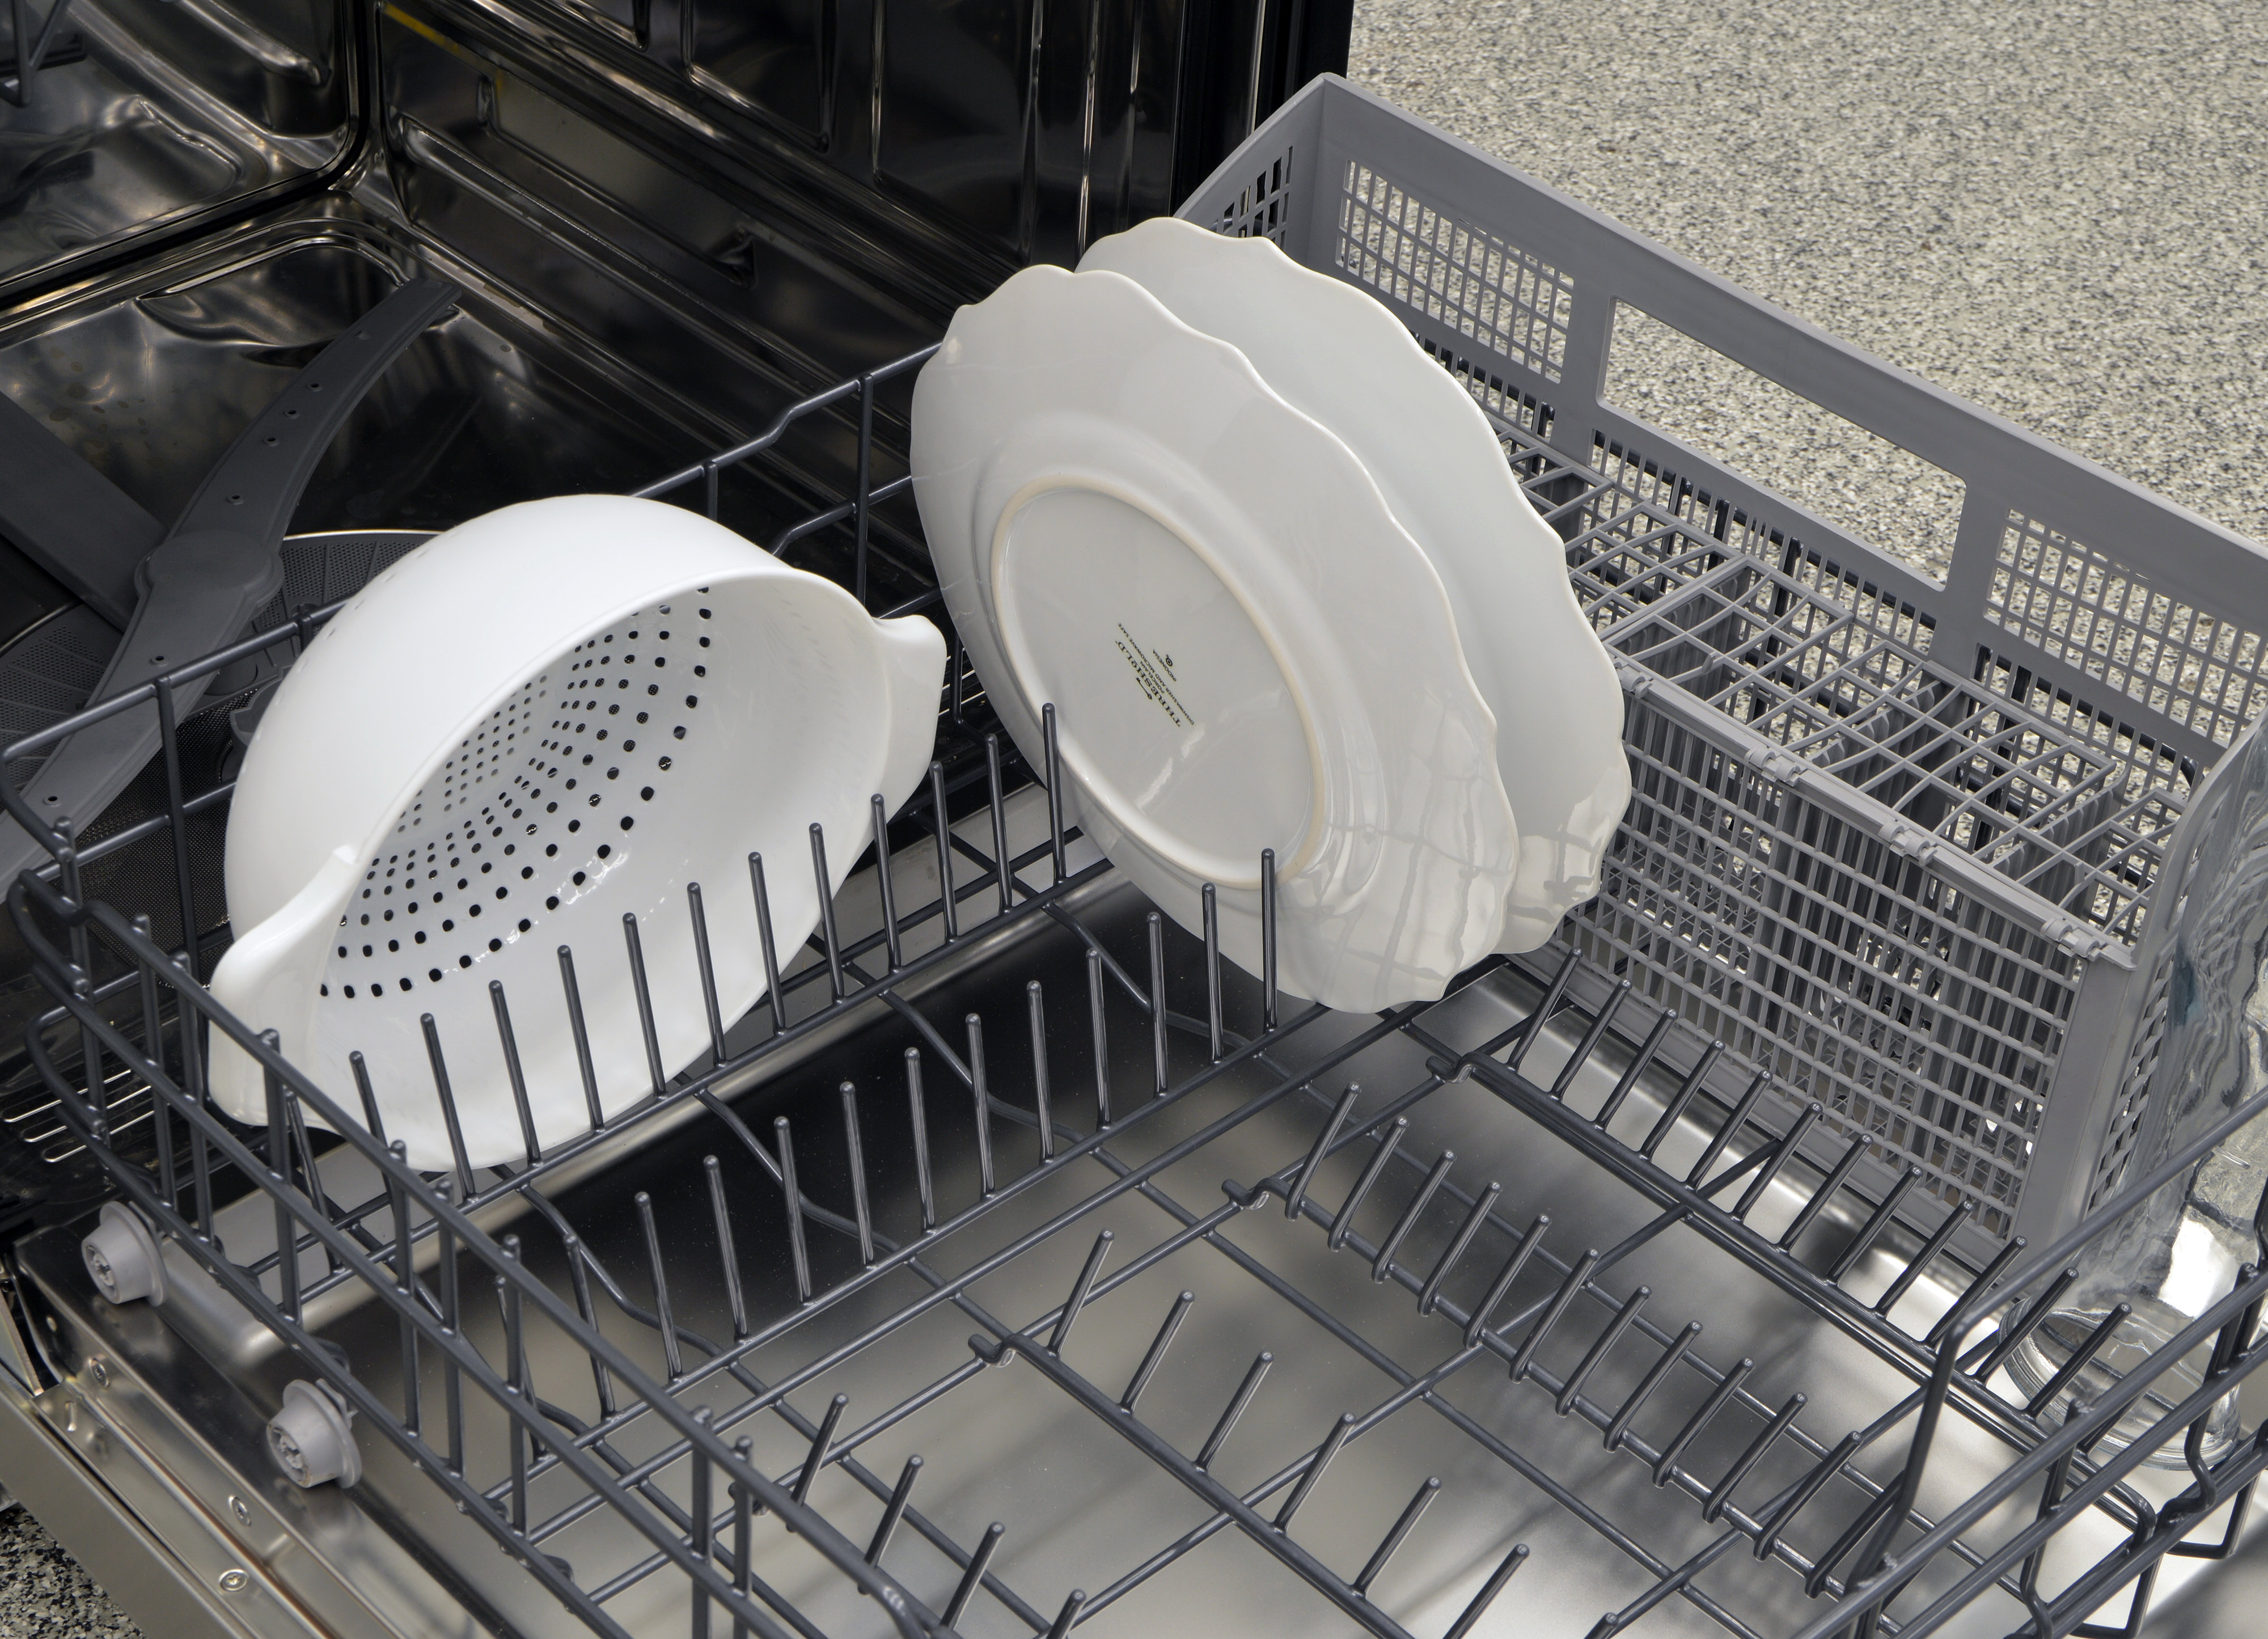 A colander and some thick plates loaded in the lower rack